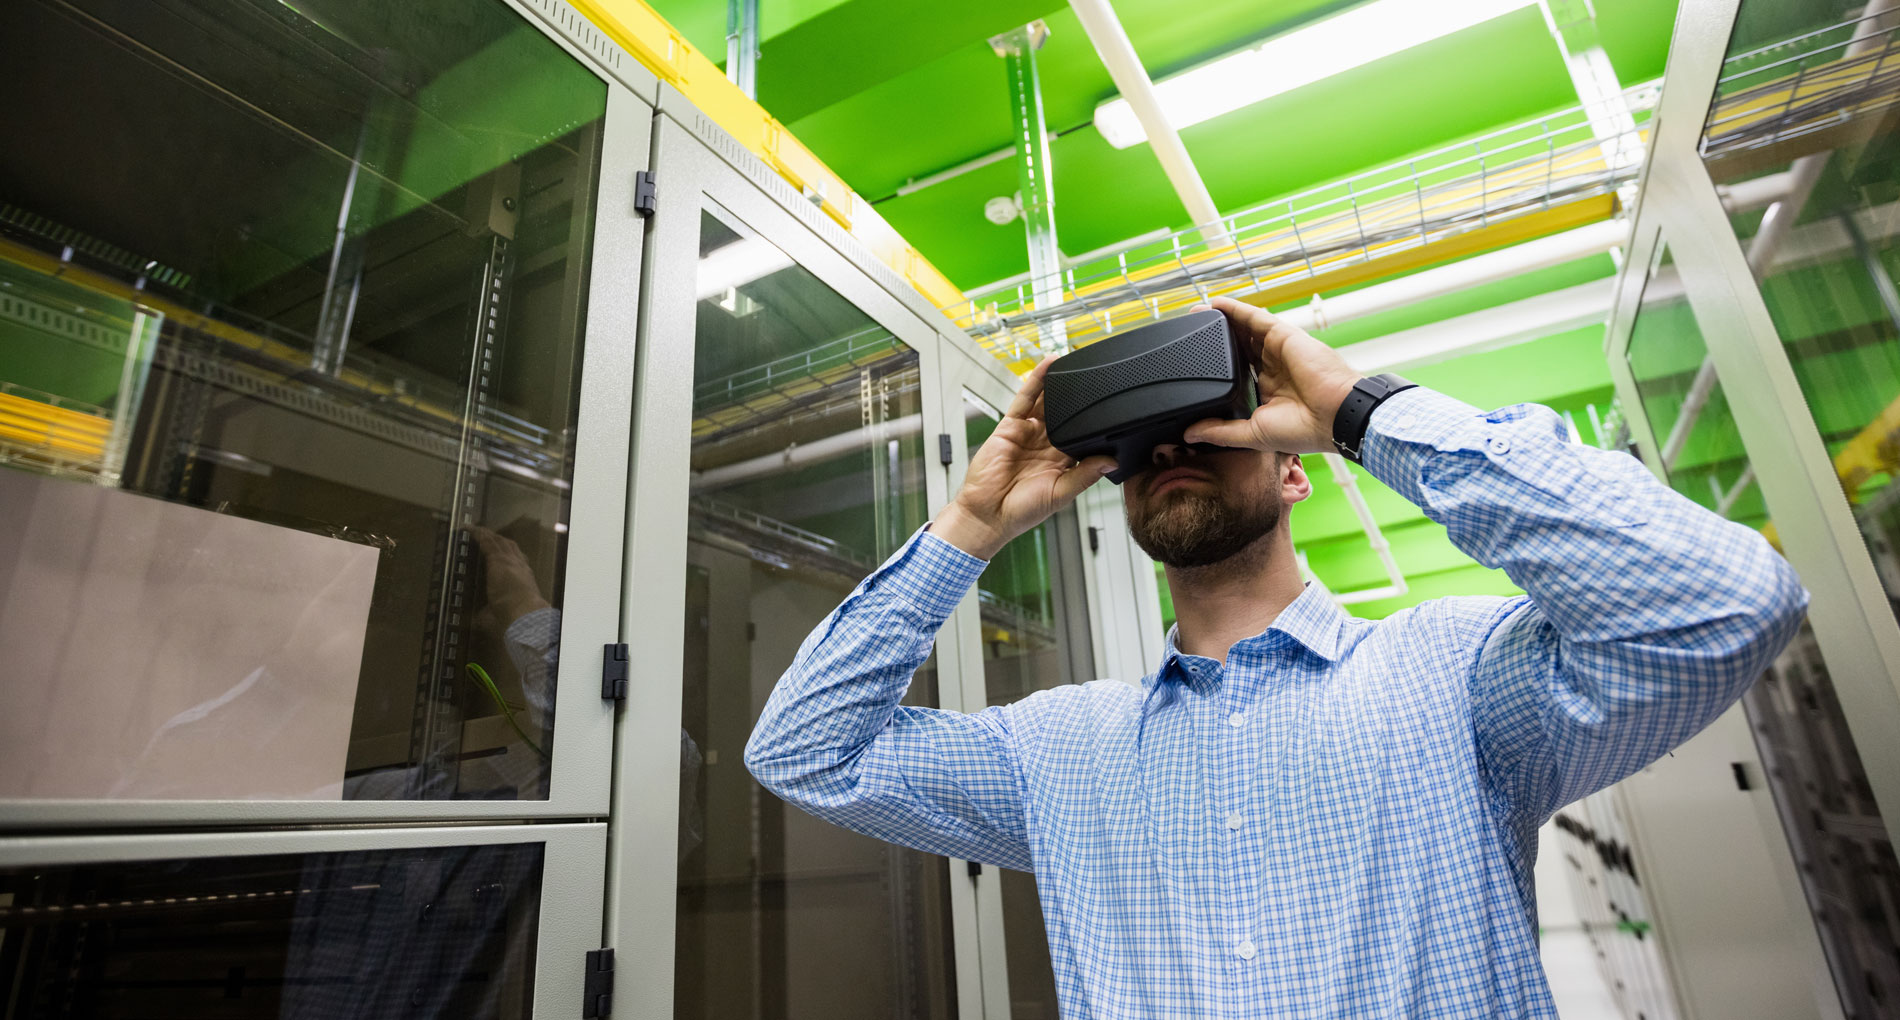 Making Virtual Reality Accessible to All